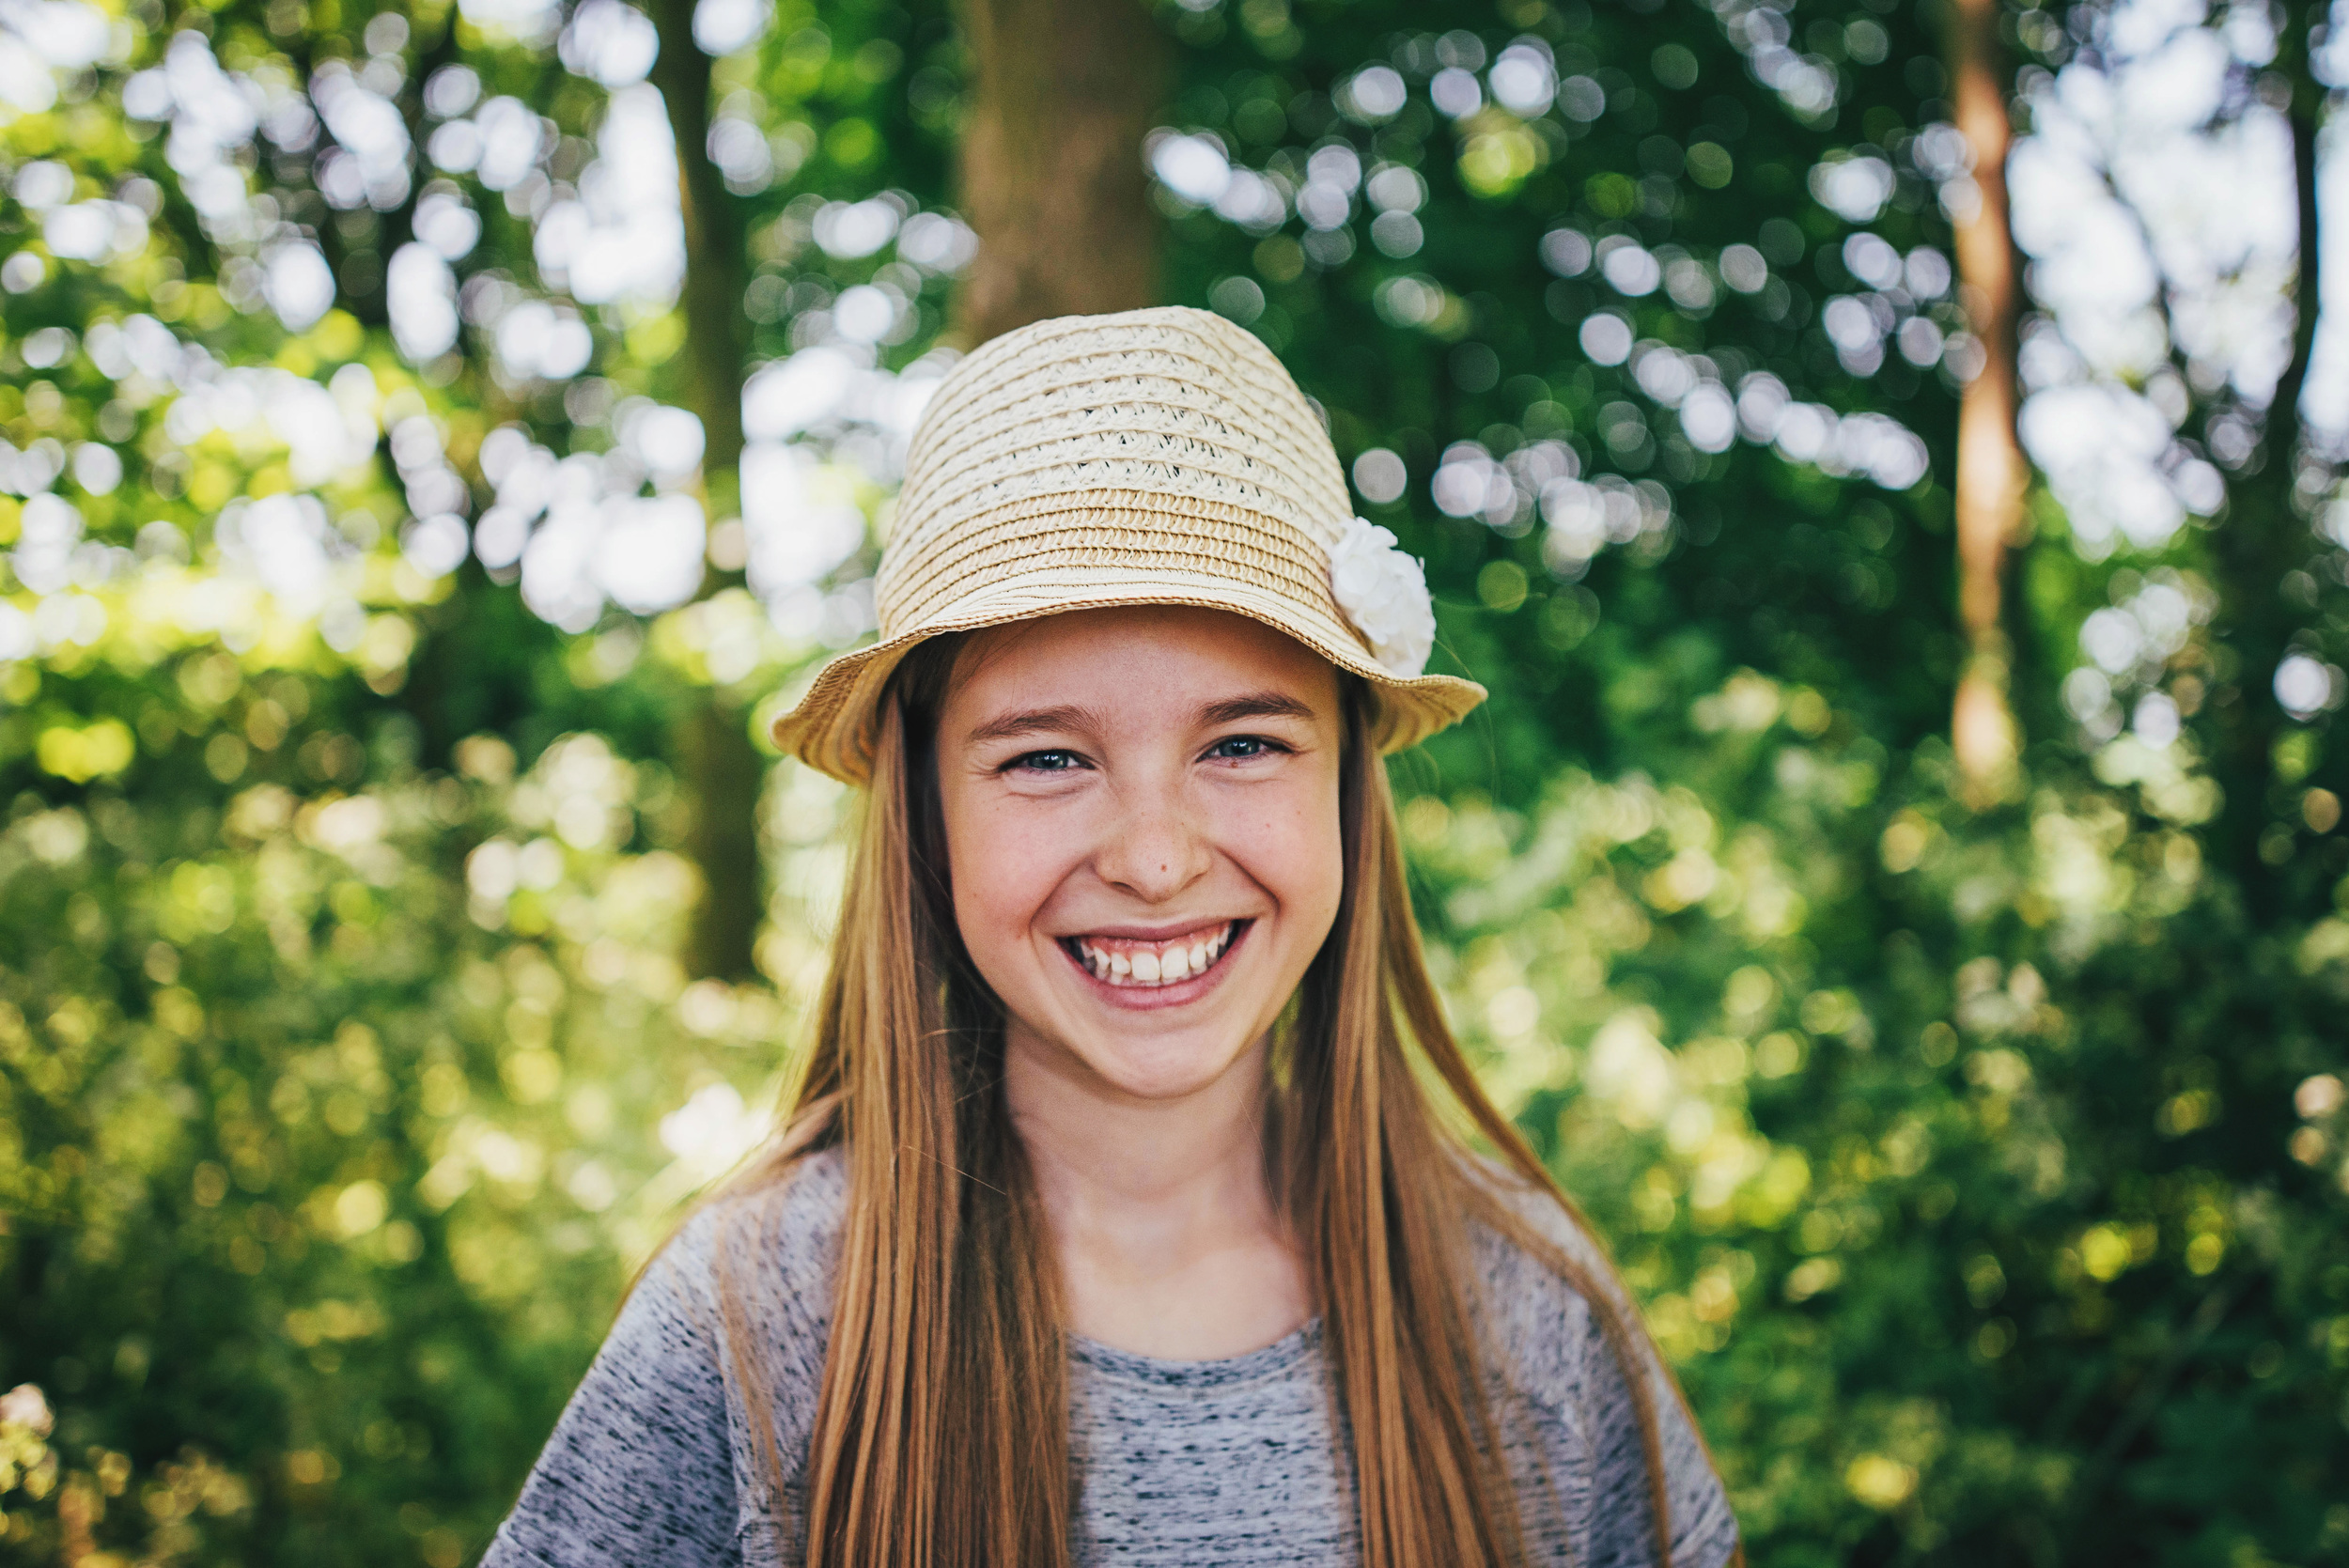 Tween girl in sunhat smiles Essex UK Documentary Portrait and Lifestyle Photographer